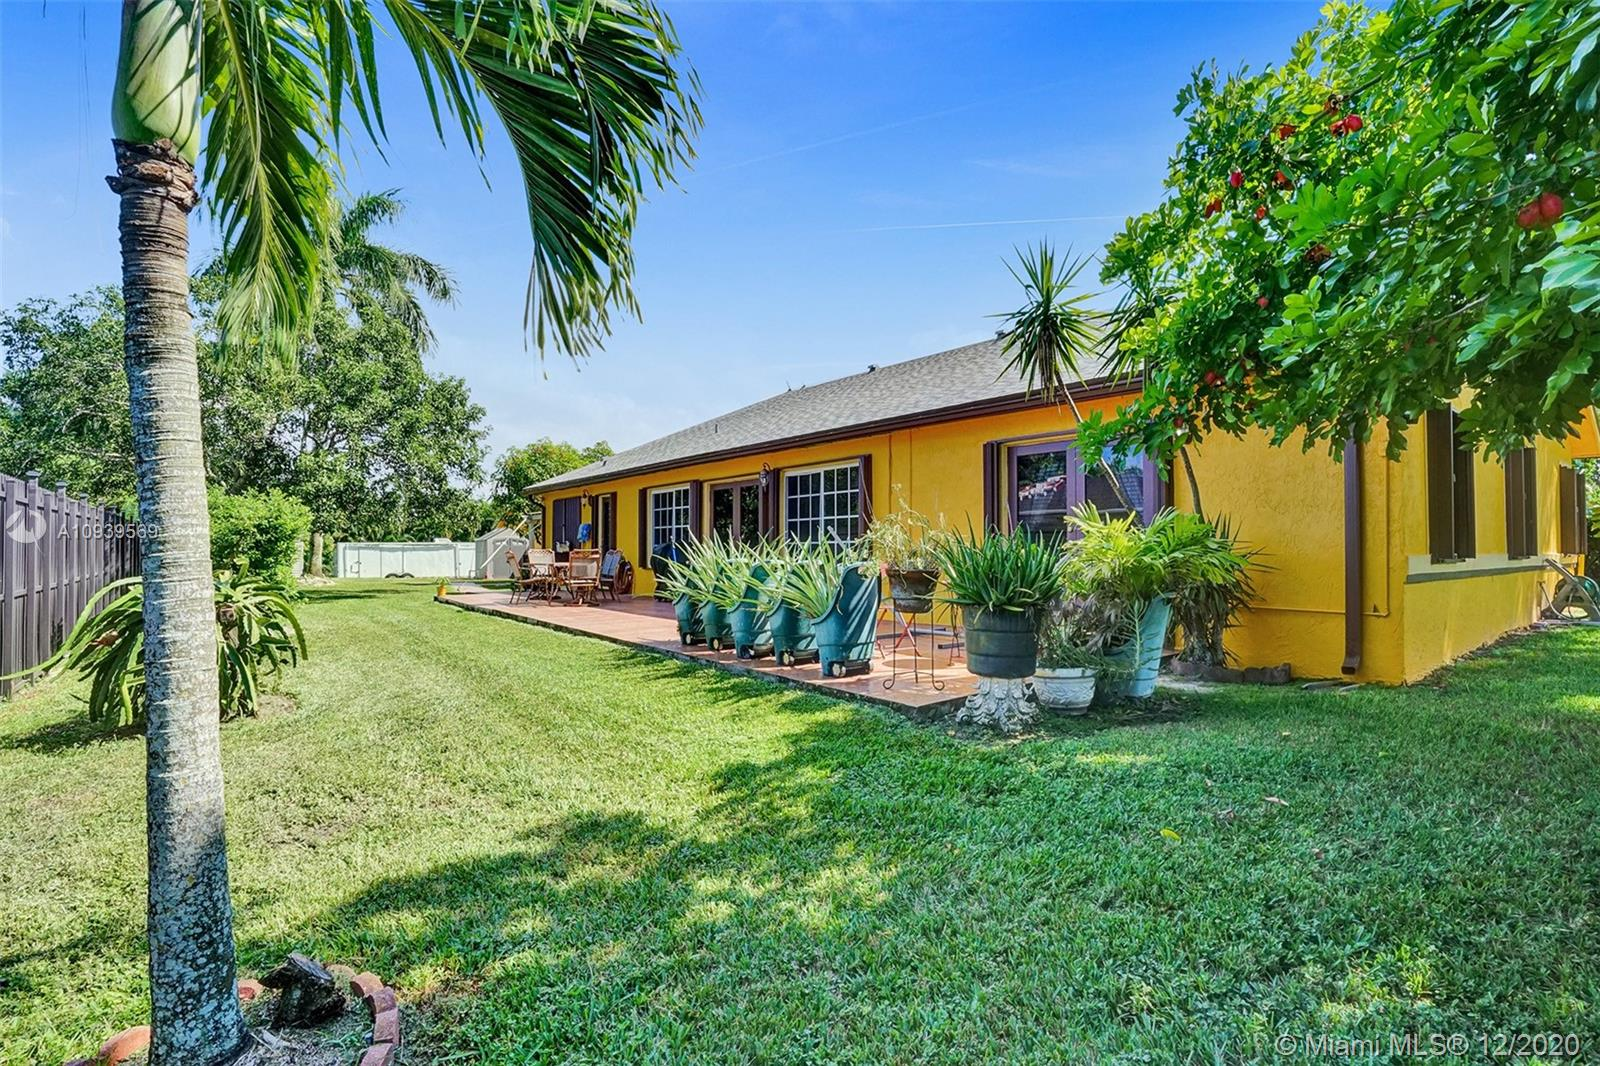 16951 SW 63rd Mnr, Southwest Ranches, Florida 33331, 4 Bedrooms Bedrooms, ,3 BathroomsBathrooms,Residential,For Sale,16951 SW 63rd Mnr,A10939569